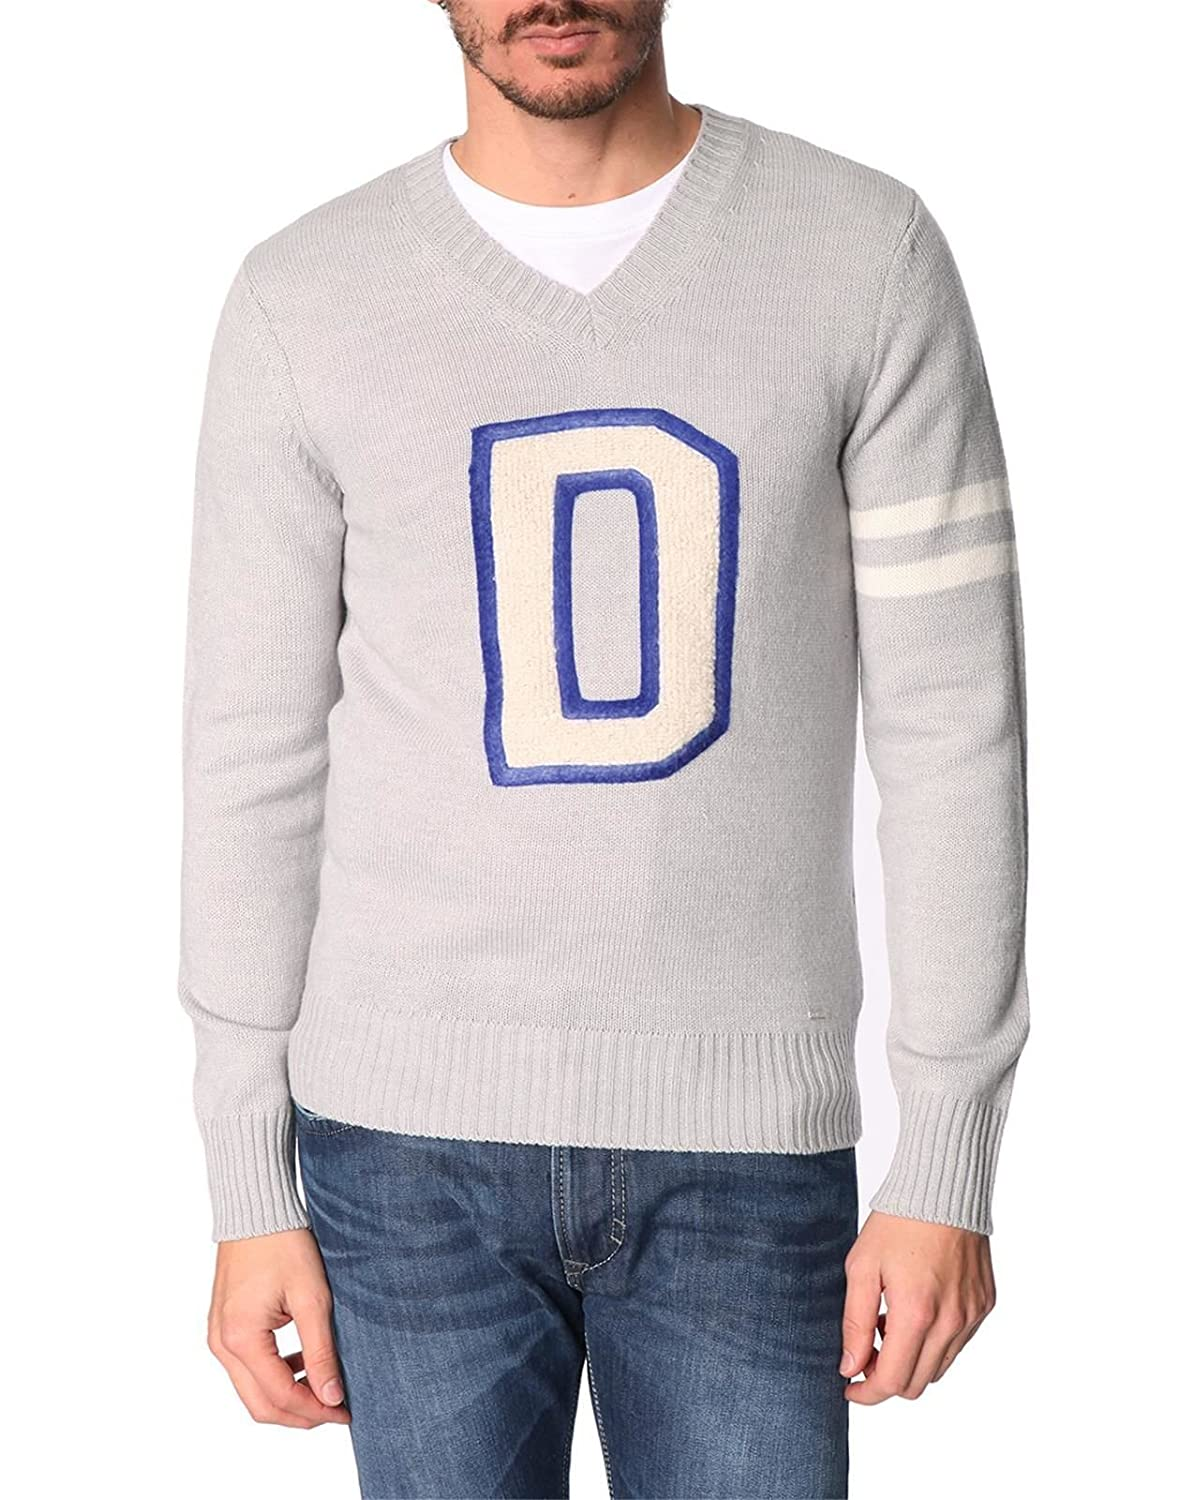 DIESEL - V-neck Sweaters - Men - D Finferlo Logo V-Neck Sweater for men